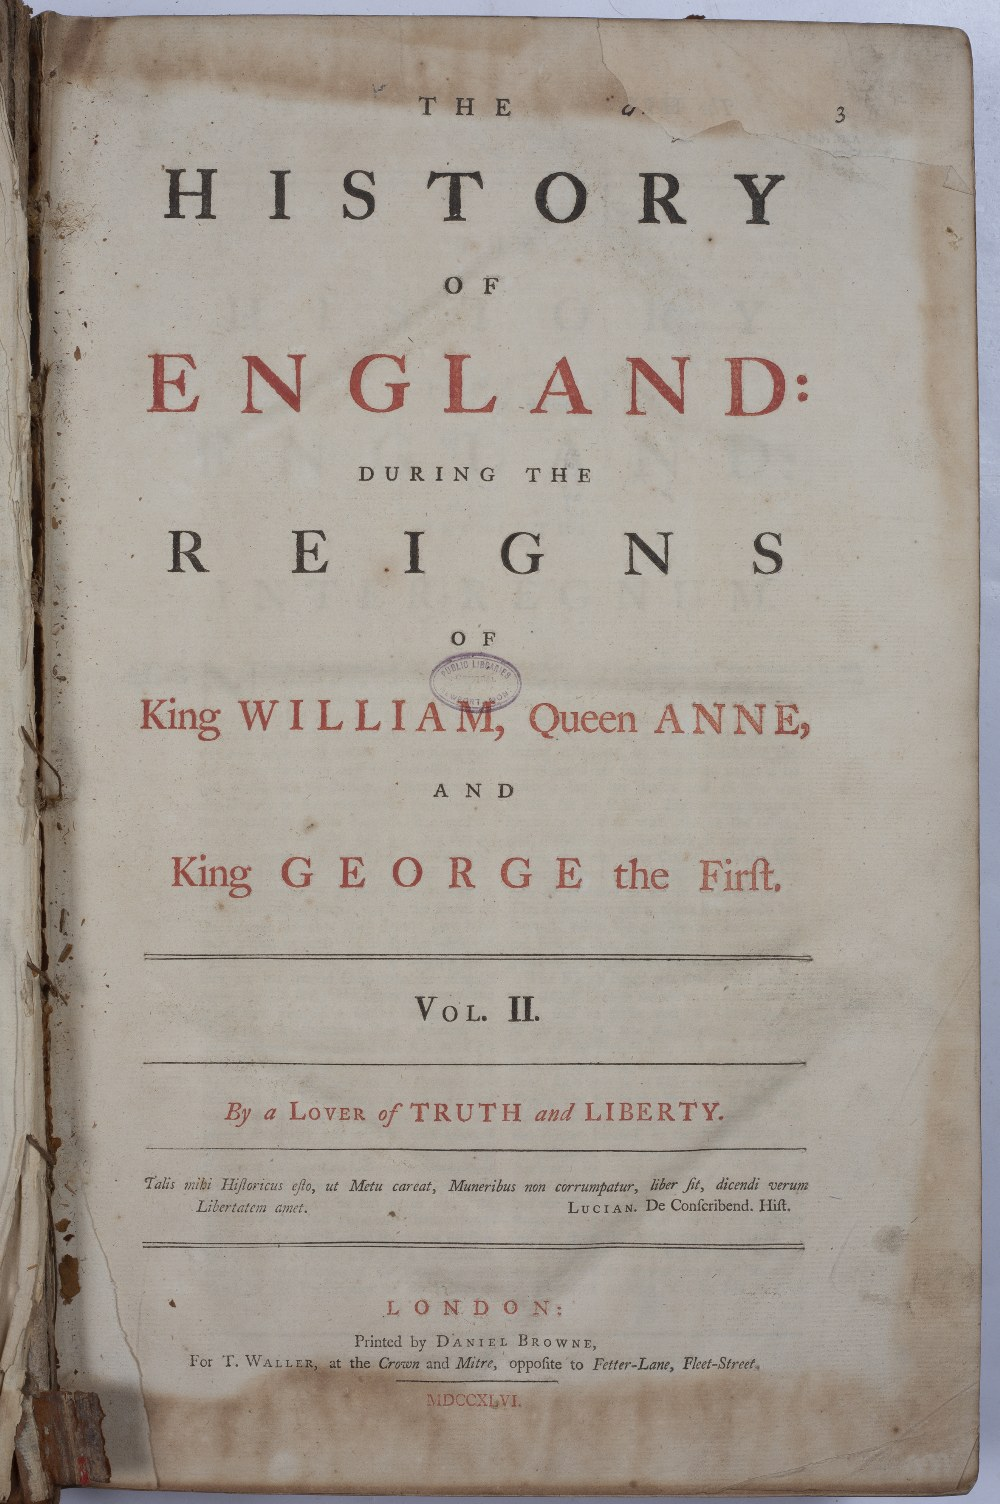 The History of England during the Reigns of K(ing) William, Q(ueen) Anne and King Geo.I with an - Image 2 of 4